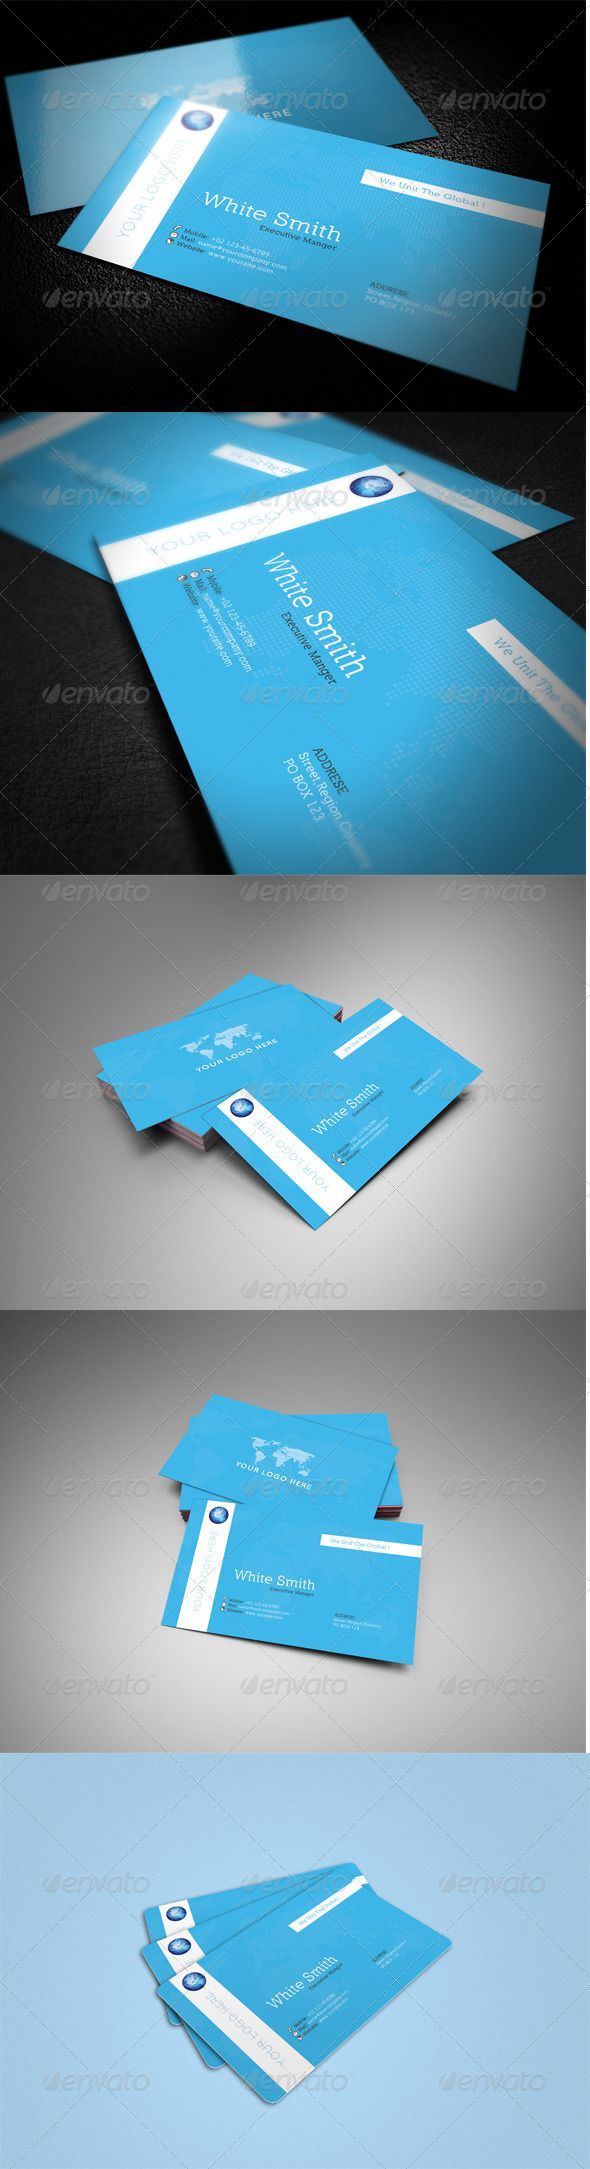 Global Business Card | Business cards, Business card psd and Business